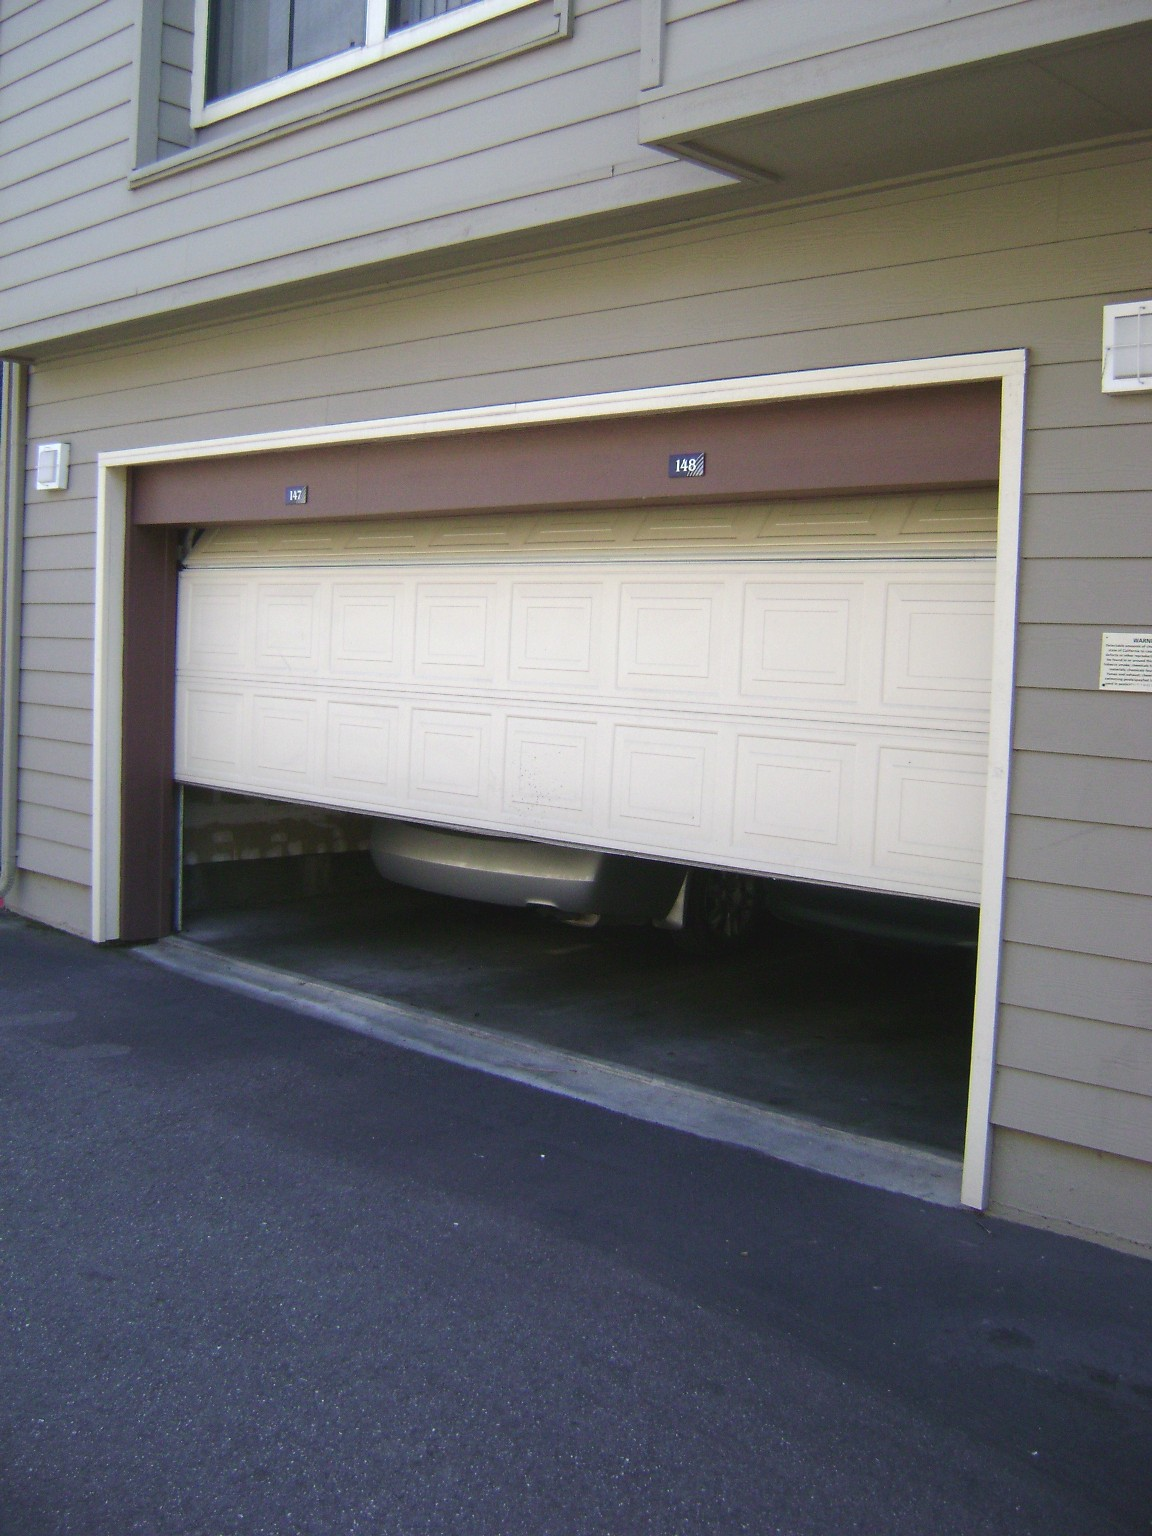 & Garage door - Wikipedia